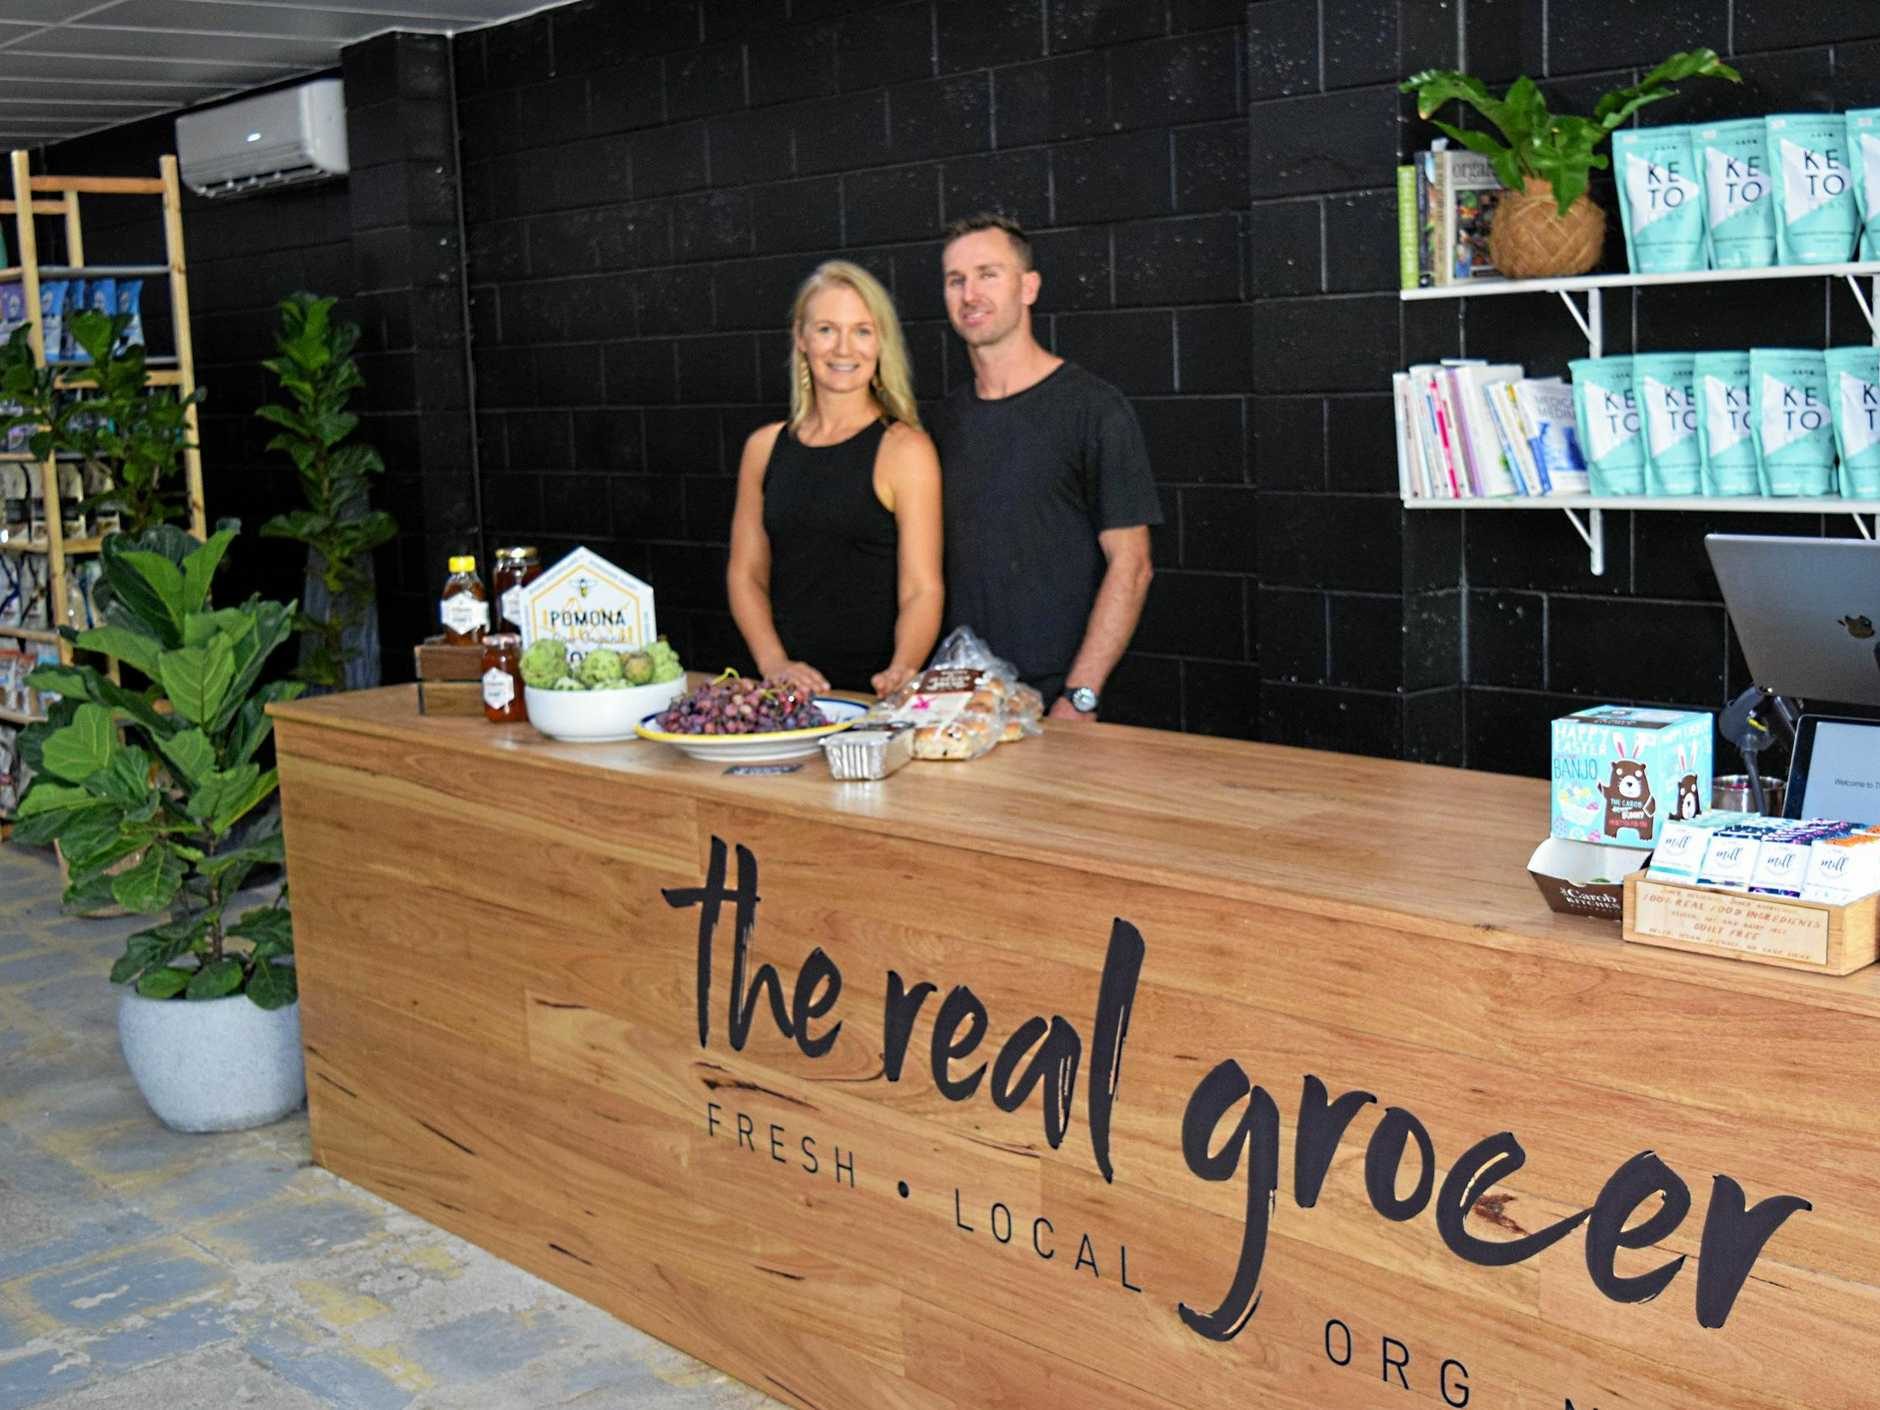 LOCAL PRODUCE: The new grocer stock local produce including spray free fruit and veg.